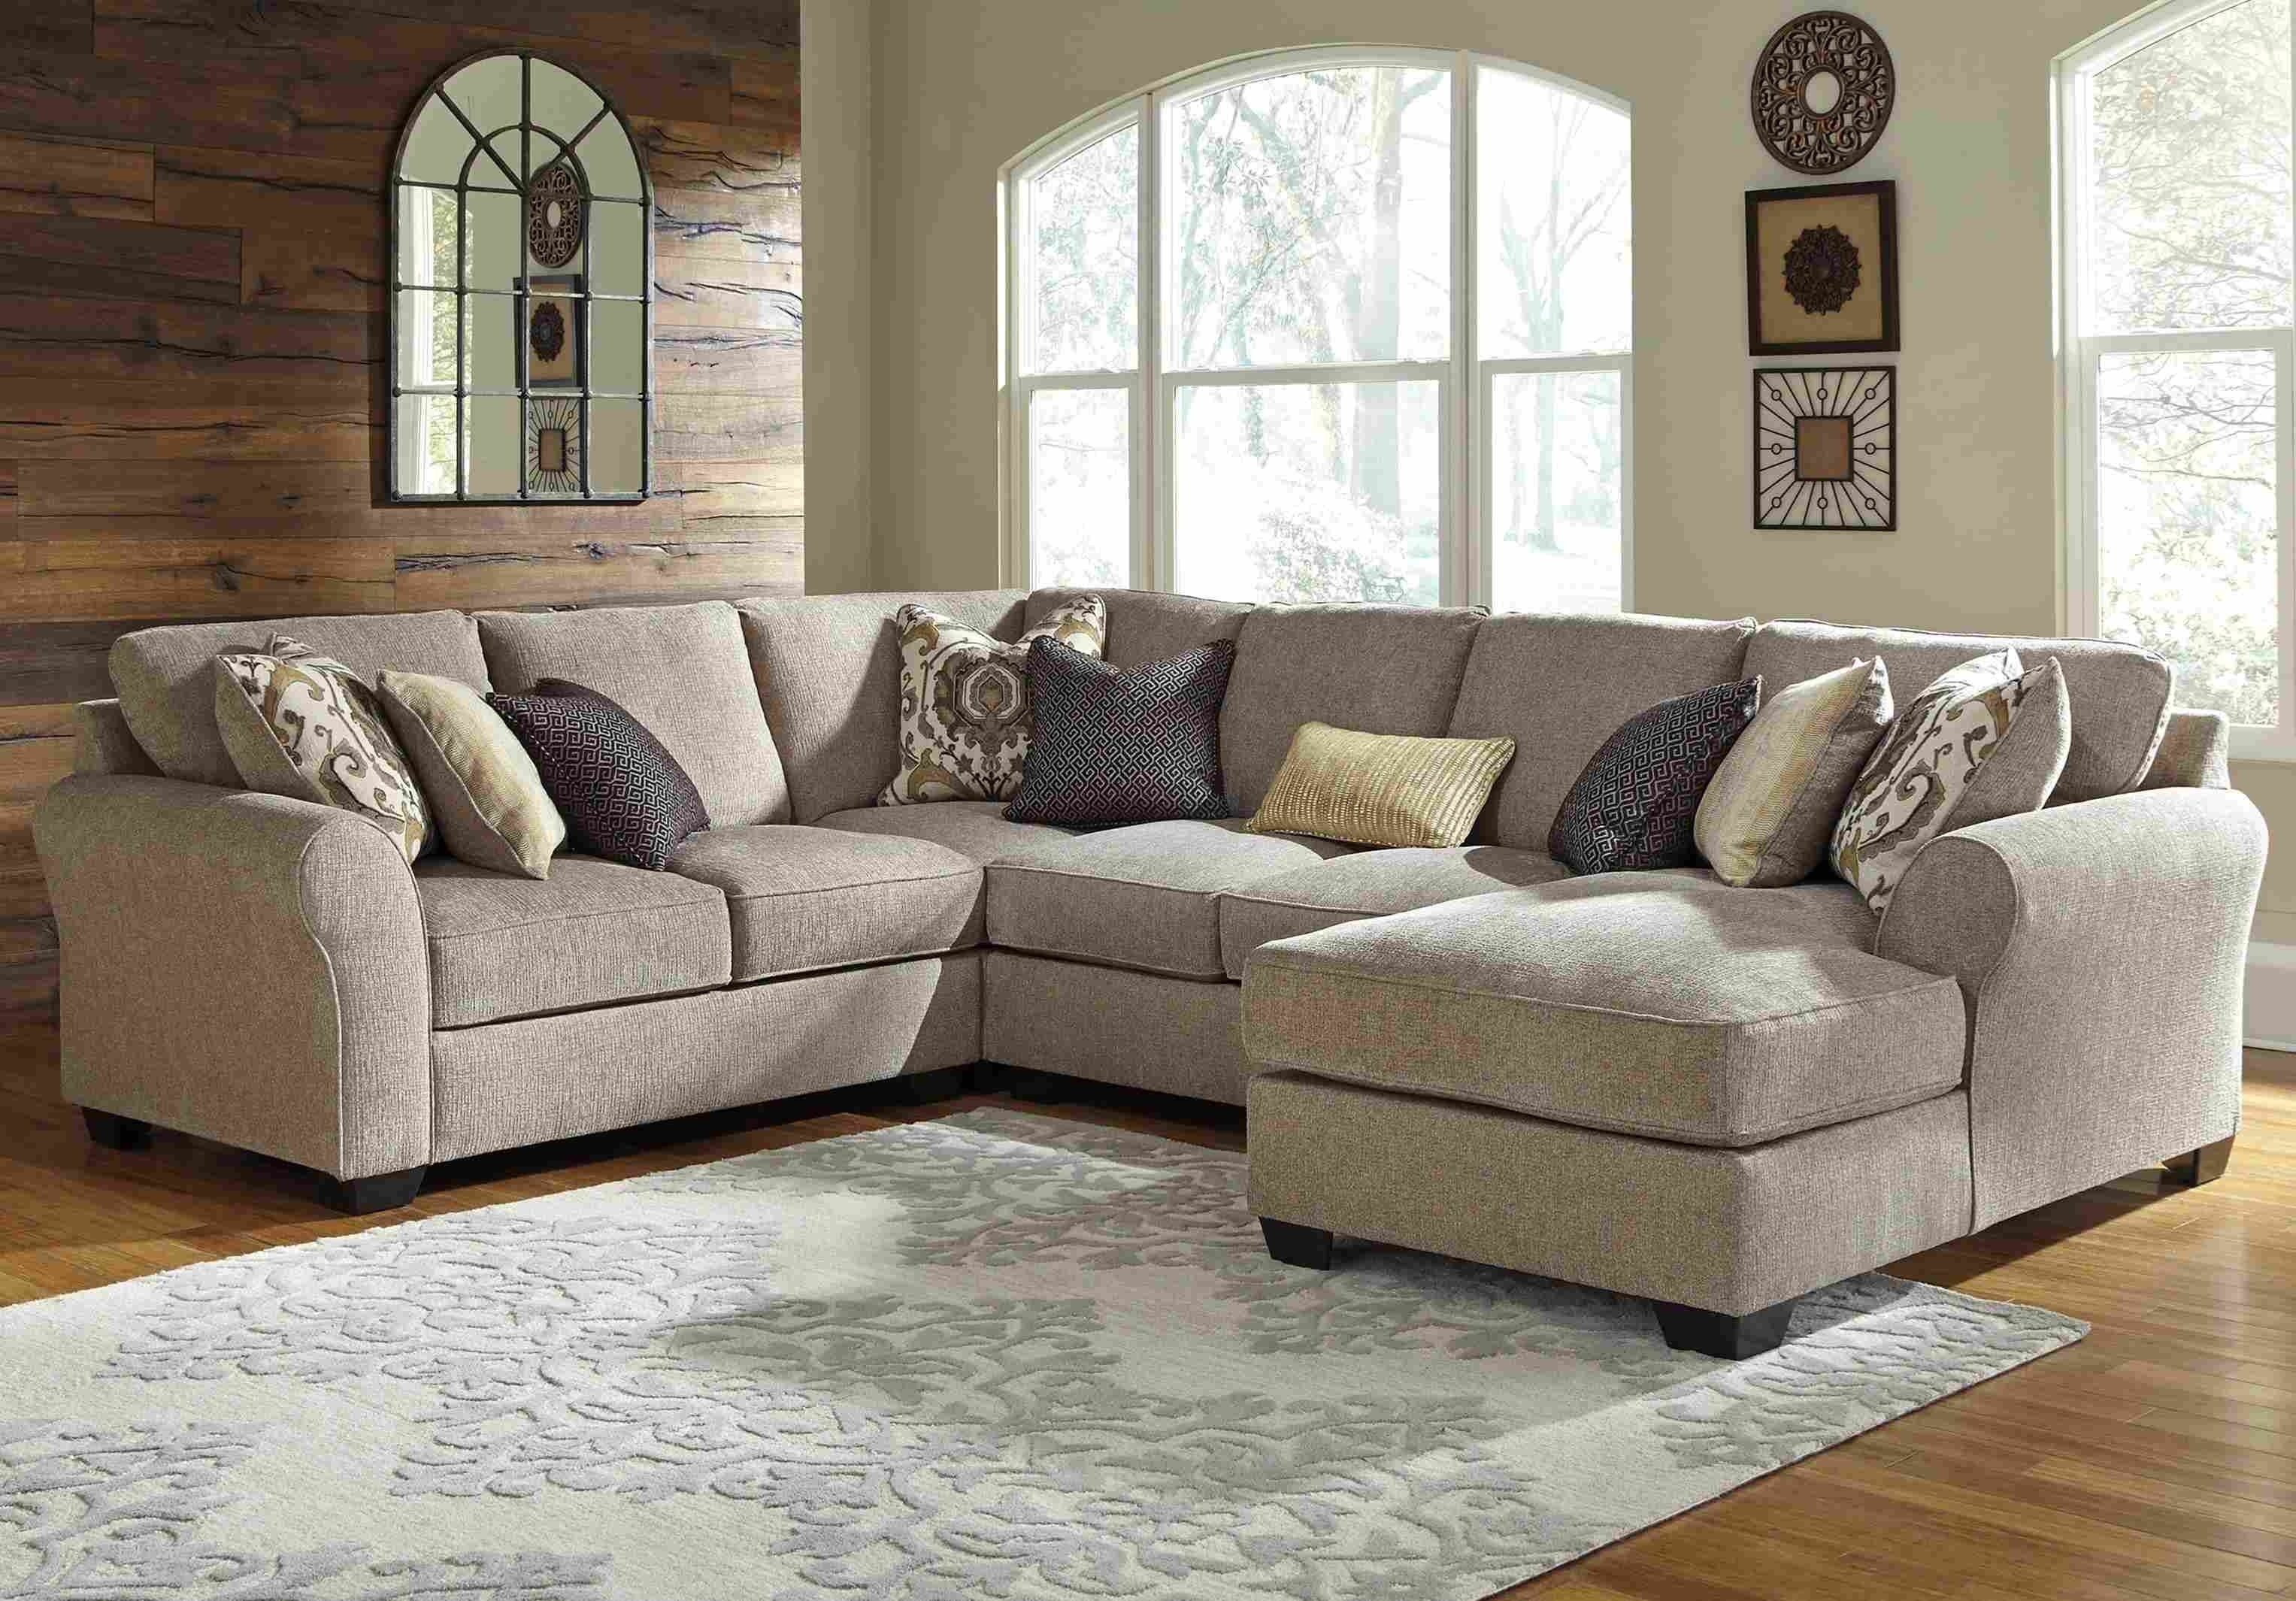 Microfiberctional Sofa With Chaise Amazing Photo Inspirations intended for Arrowmask 2 Piece Sectionals With Sleeper & Right Facing Chaise (Image 20 of 30)